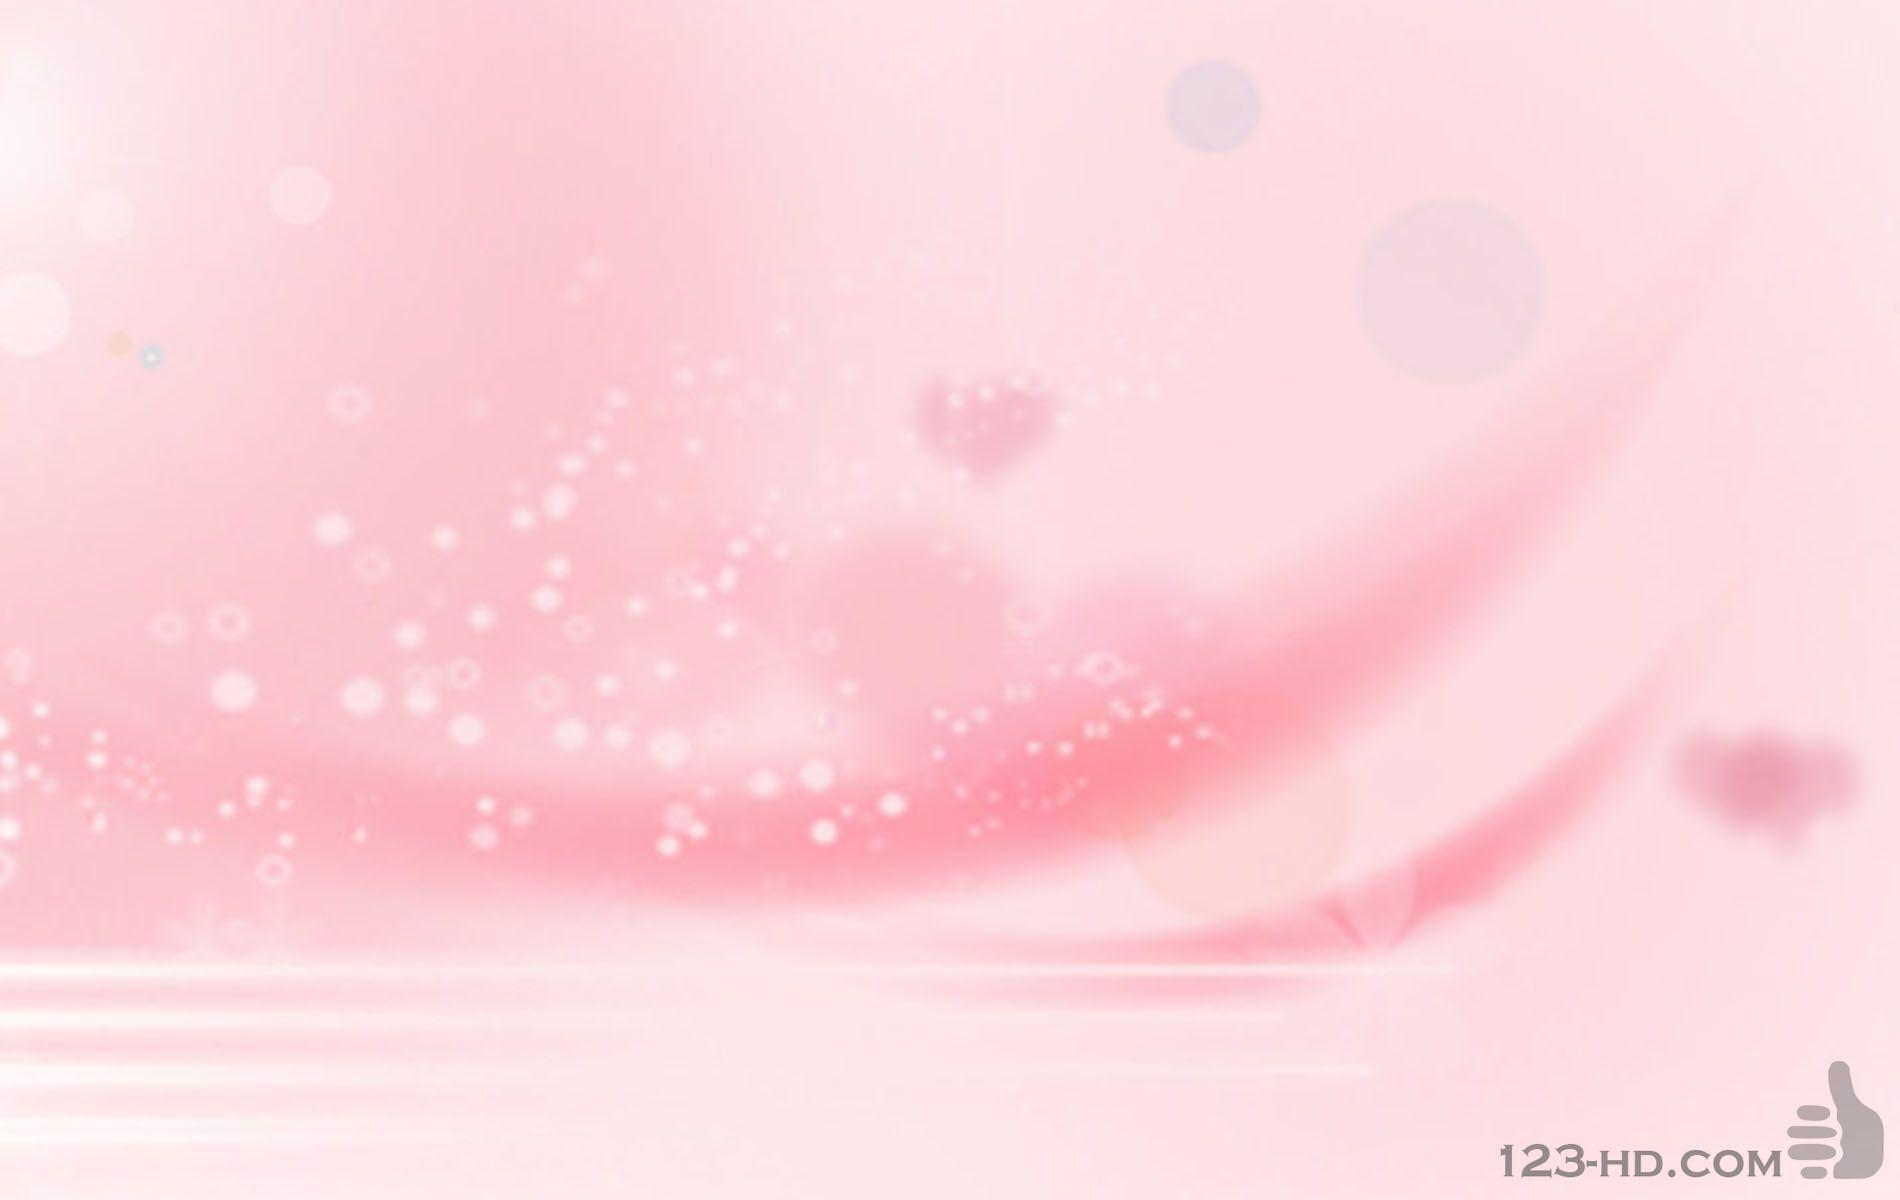 light pink backgrounds - photo #31